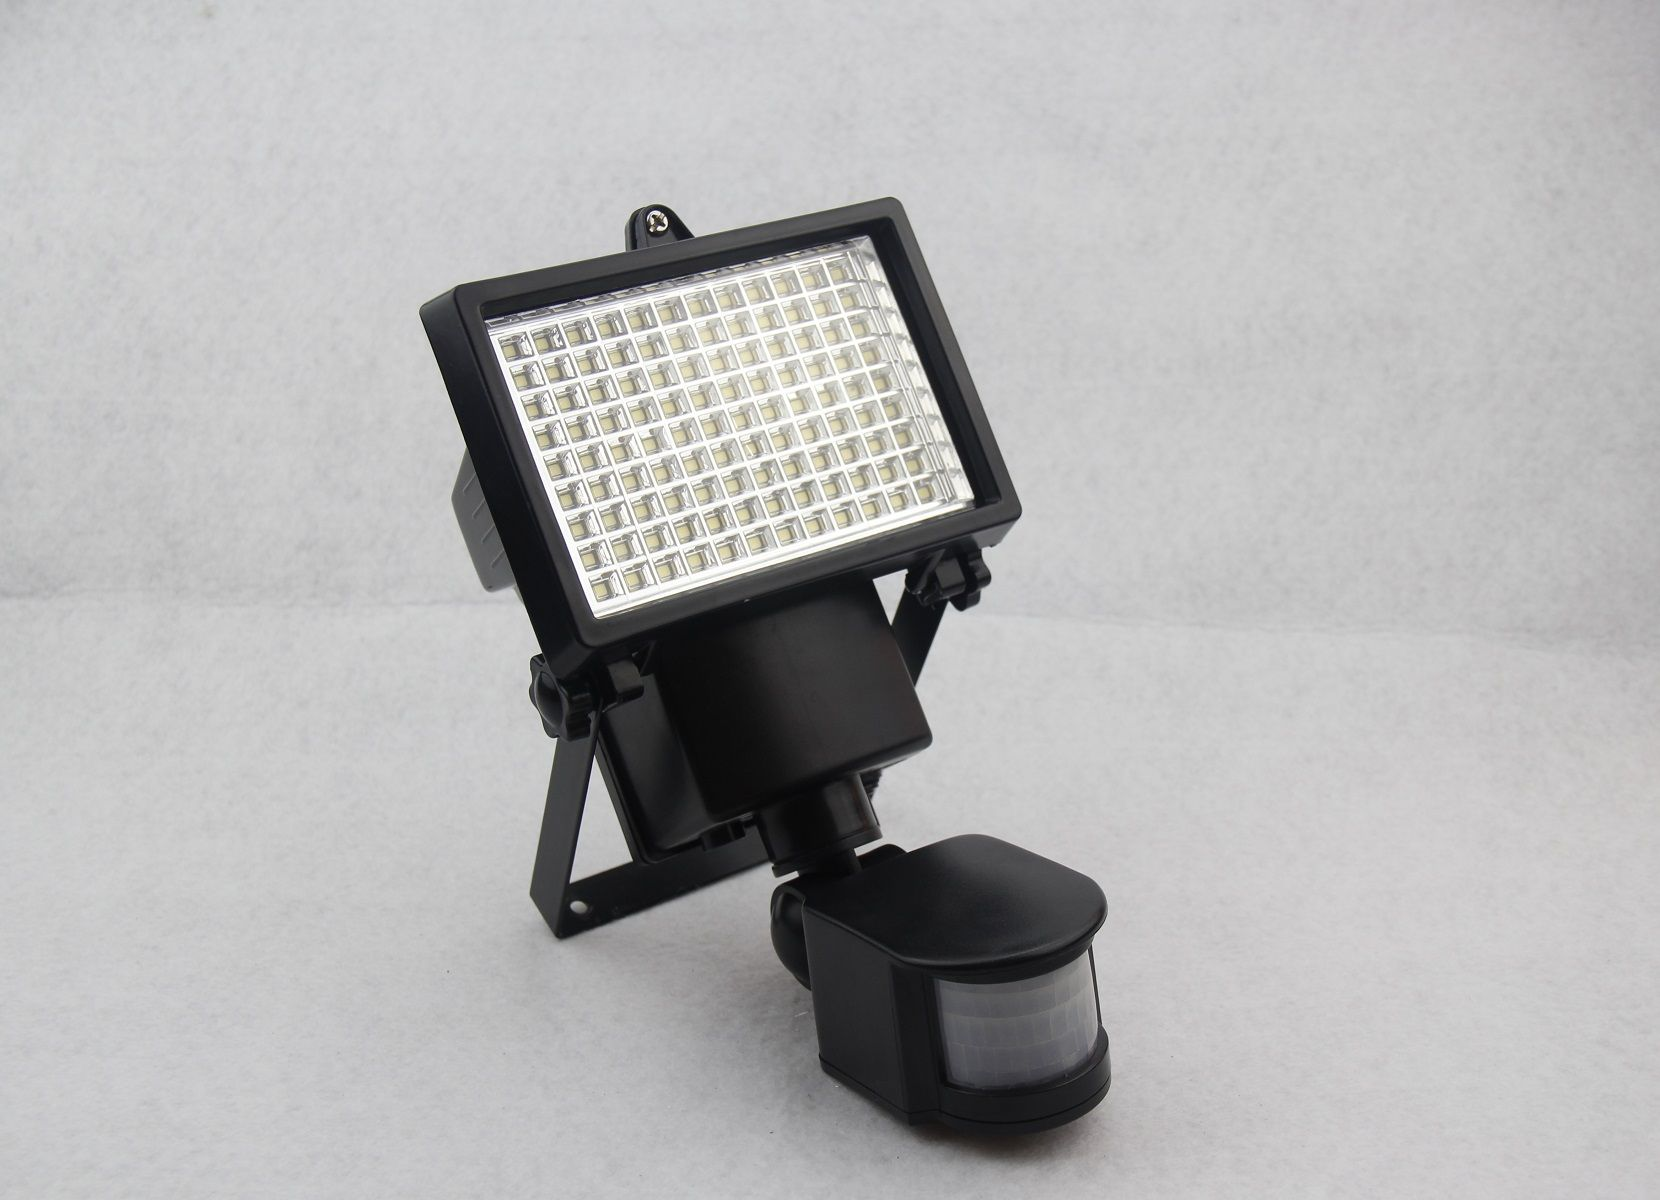 outdoor lights rechargeable down wall dream the led on motion lighting web